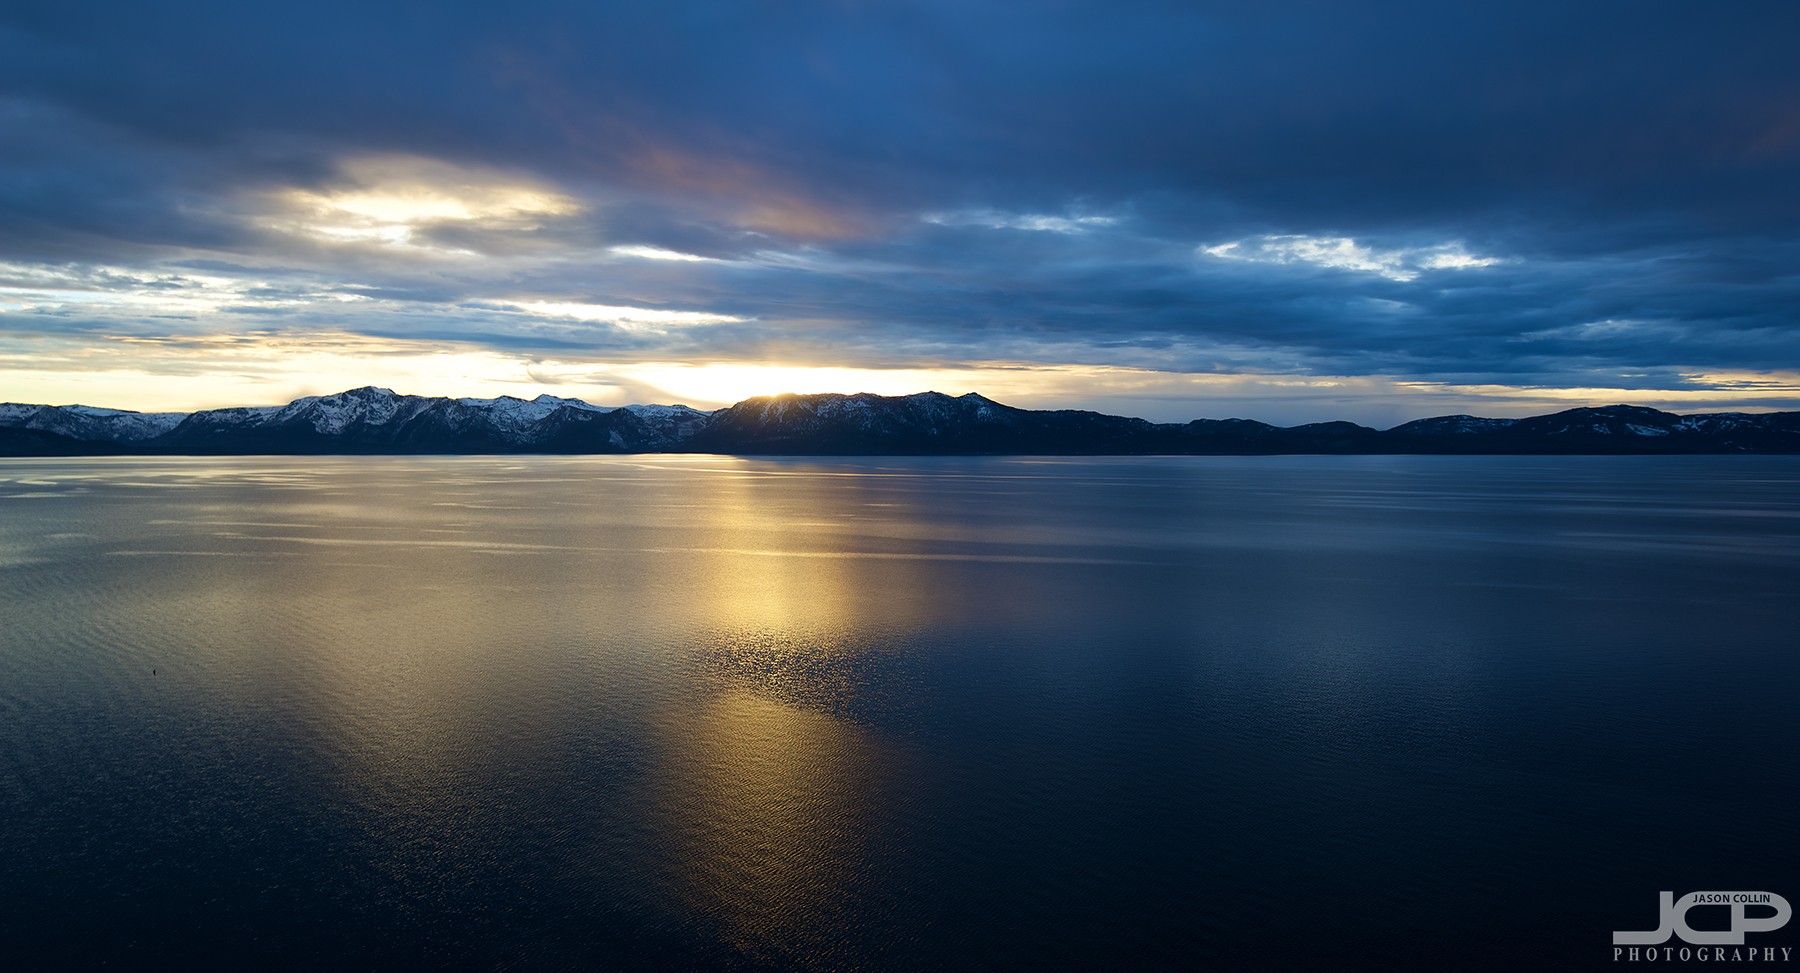 Beautiful Lake Tahoe photographed from the top of Cave Rock during the last sunset of 2017 - Nikon D750 with Tamron 15-30mm f/2.8 SP handheld